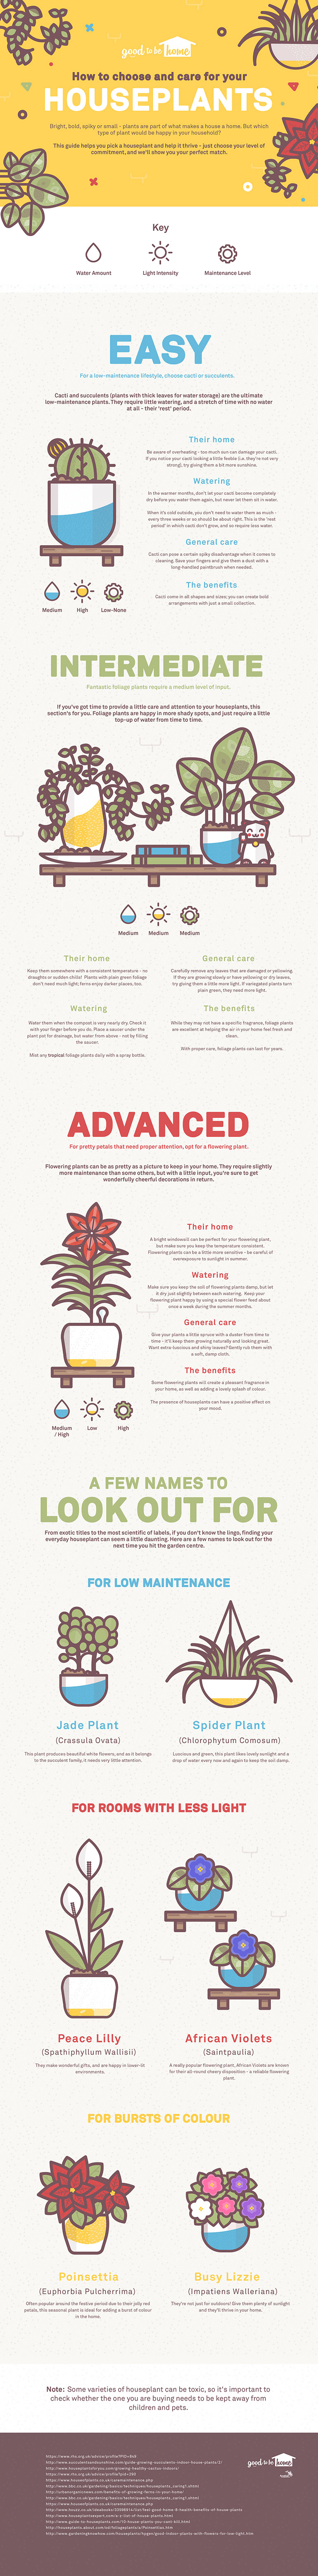 Anglian's Guide to Keeping Houseplants